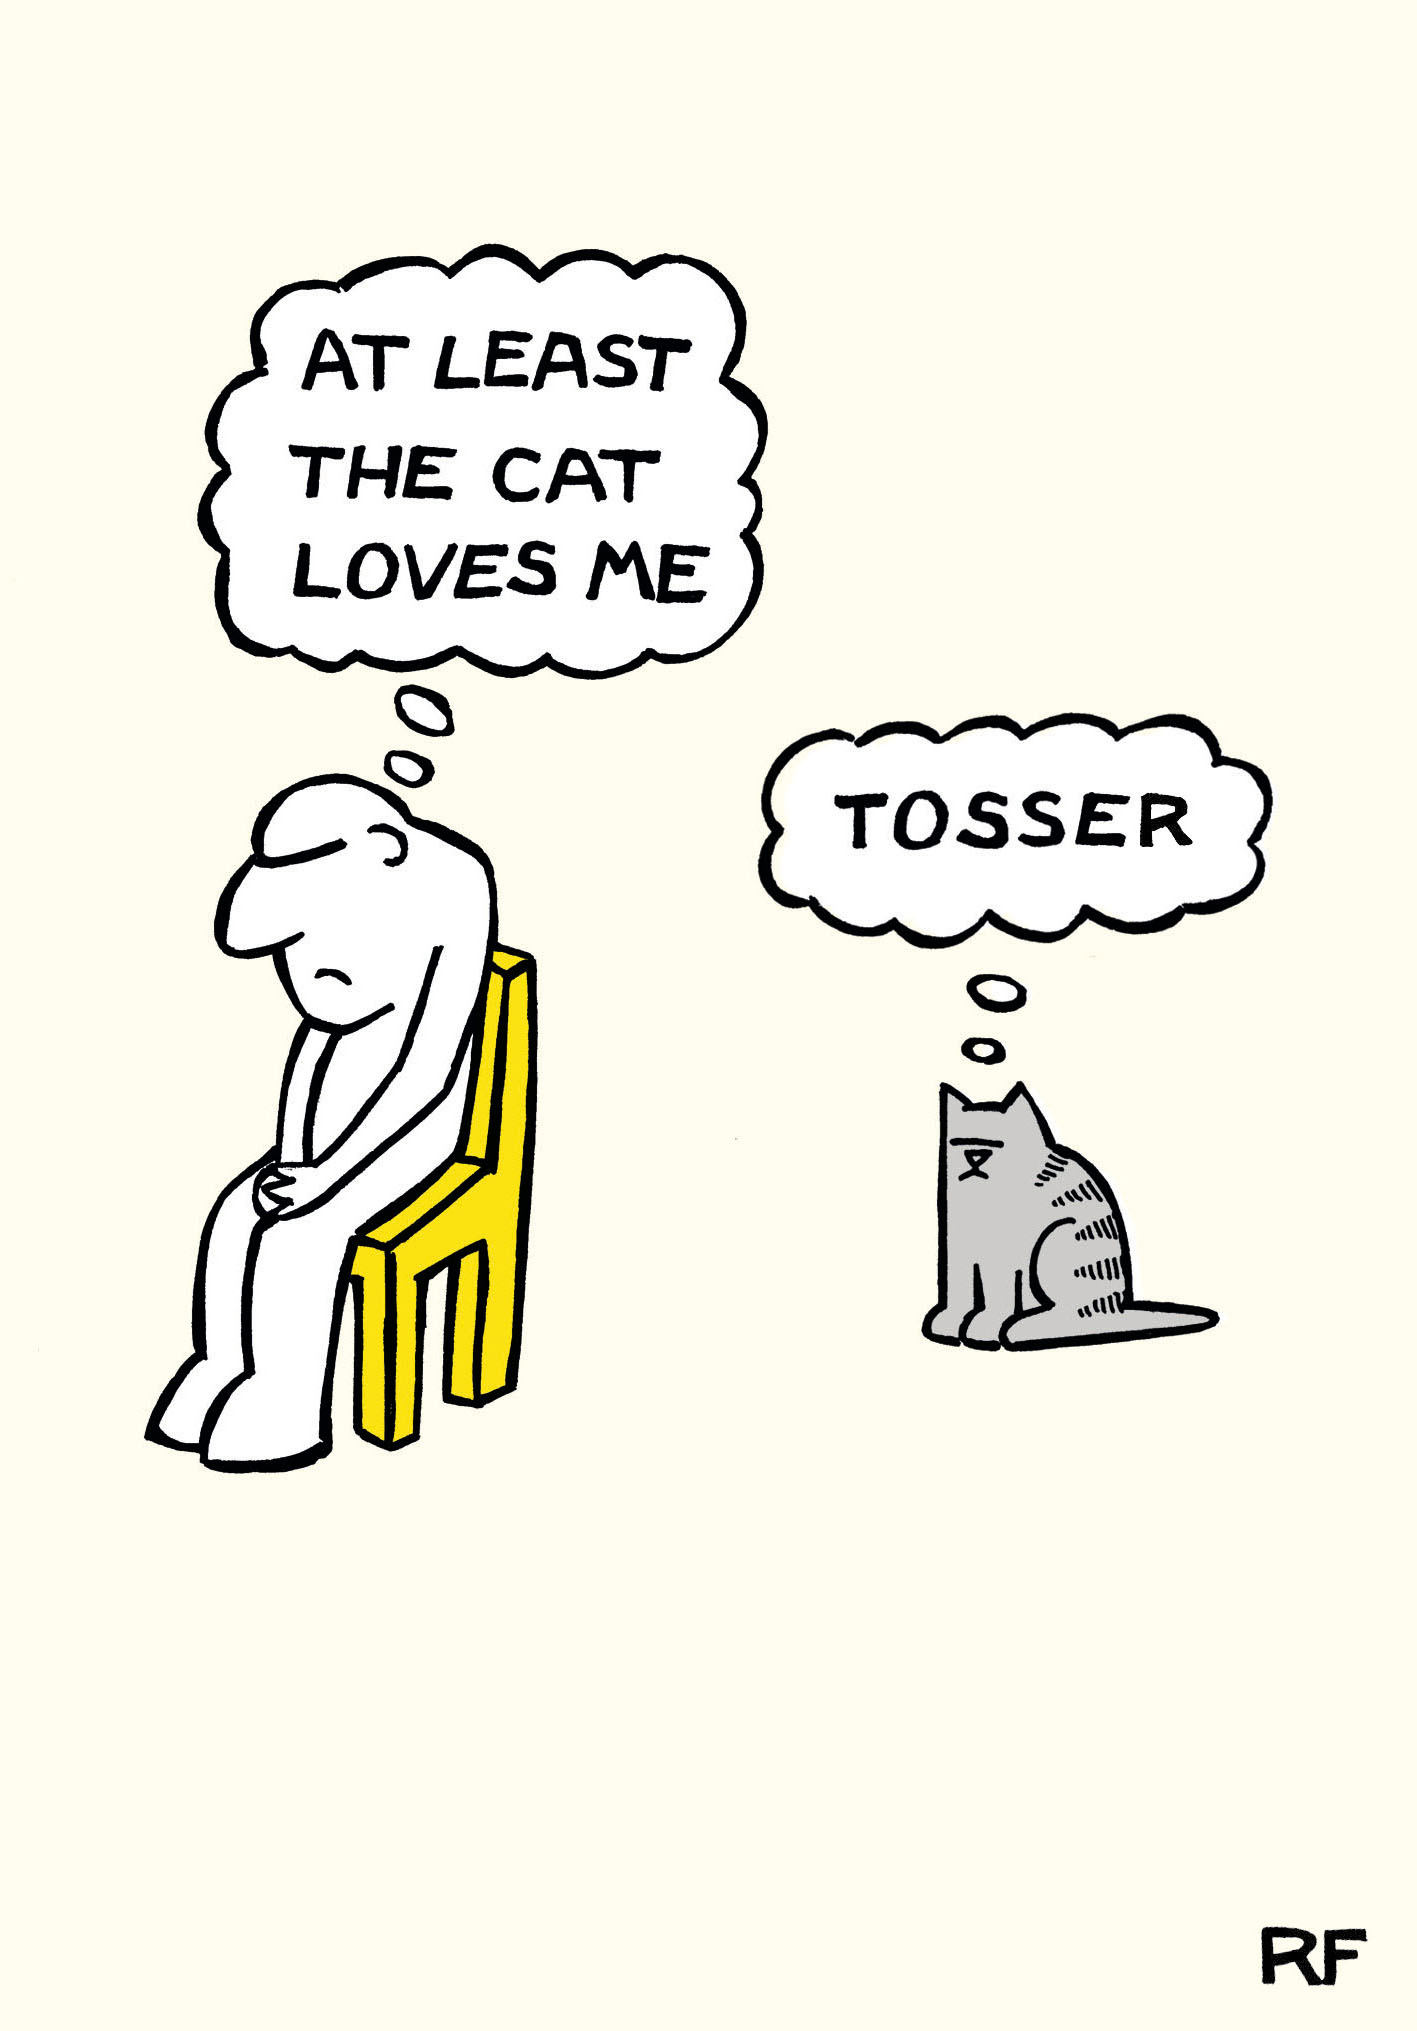 Tosser - Funny Greeting Card